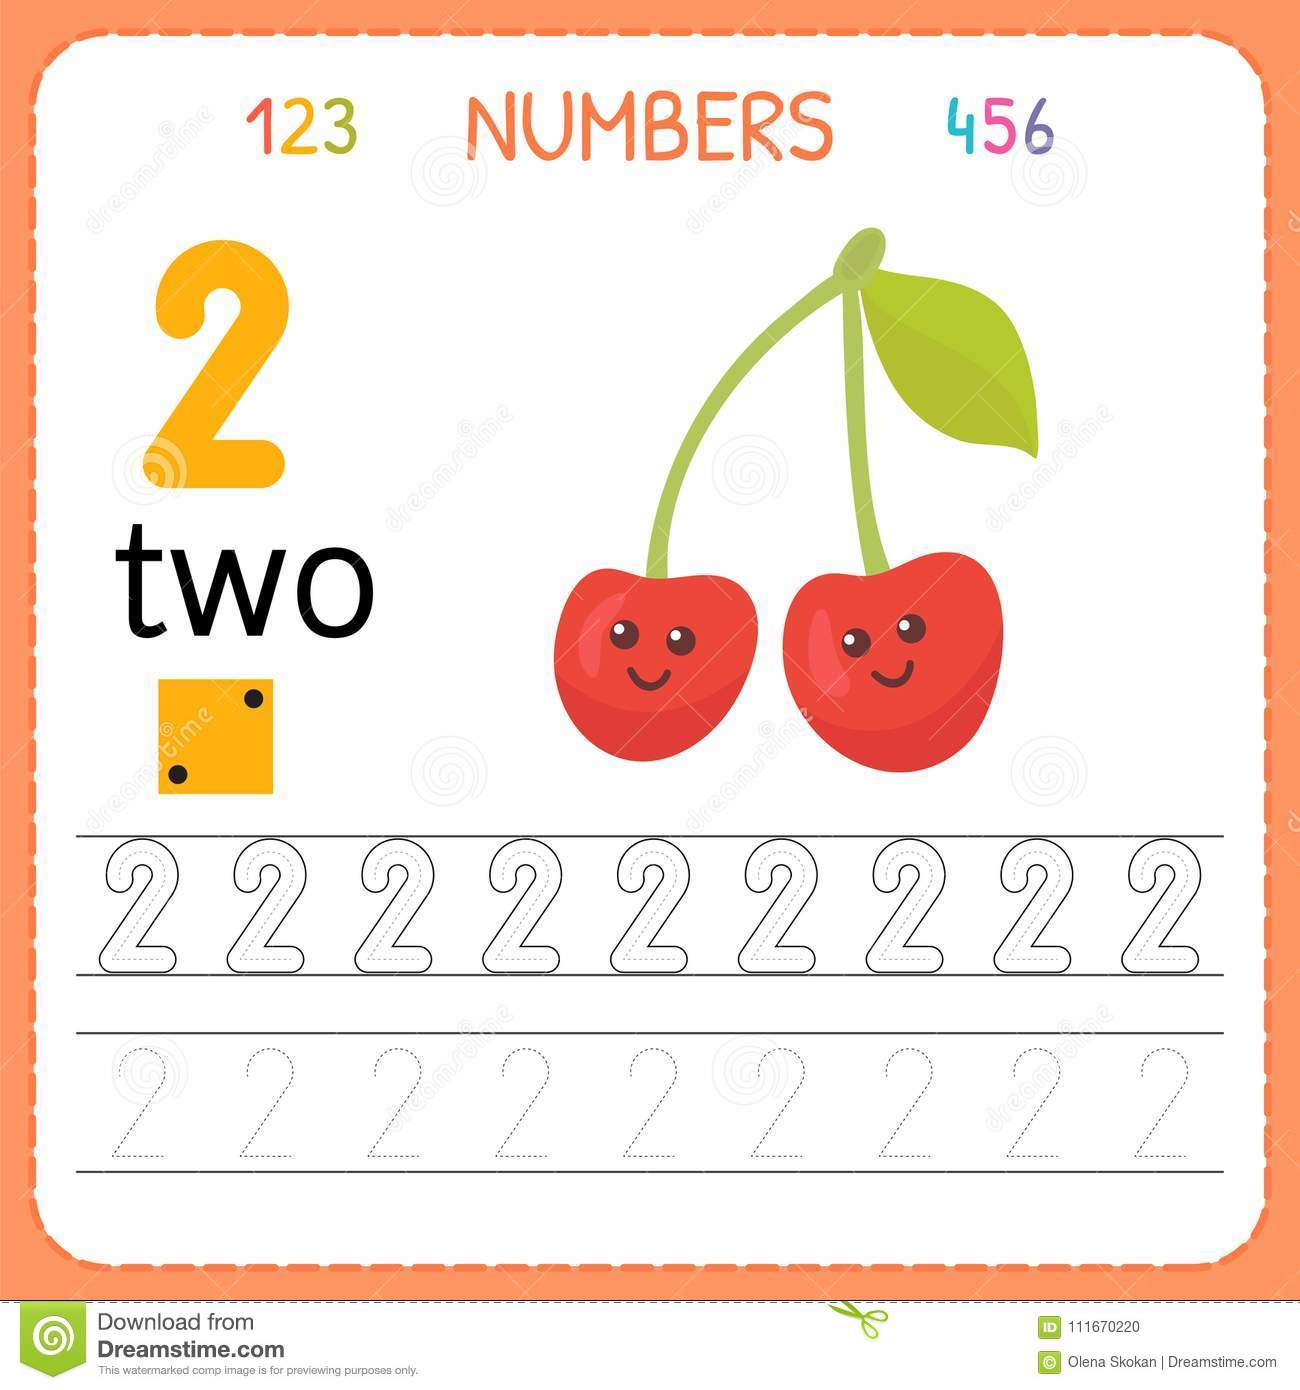 Numbers Tracing Worksheet For Preschool And Kindergarten Writing Number Two Exercises For Kids